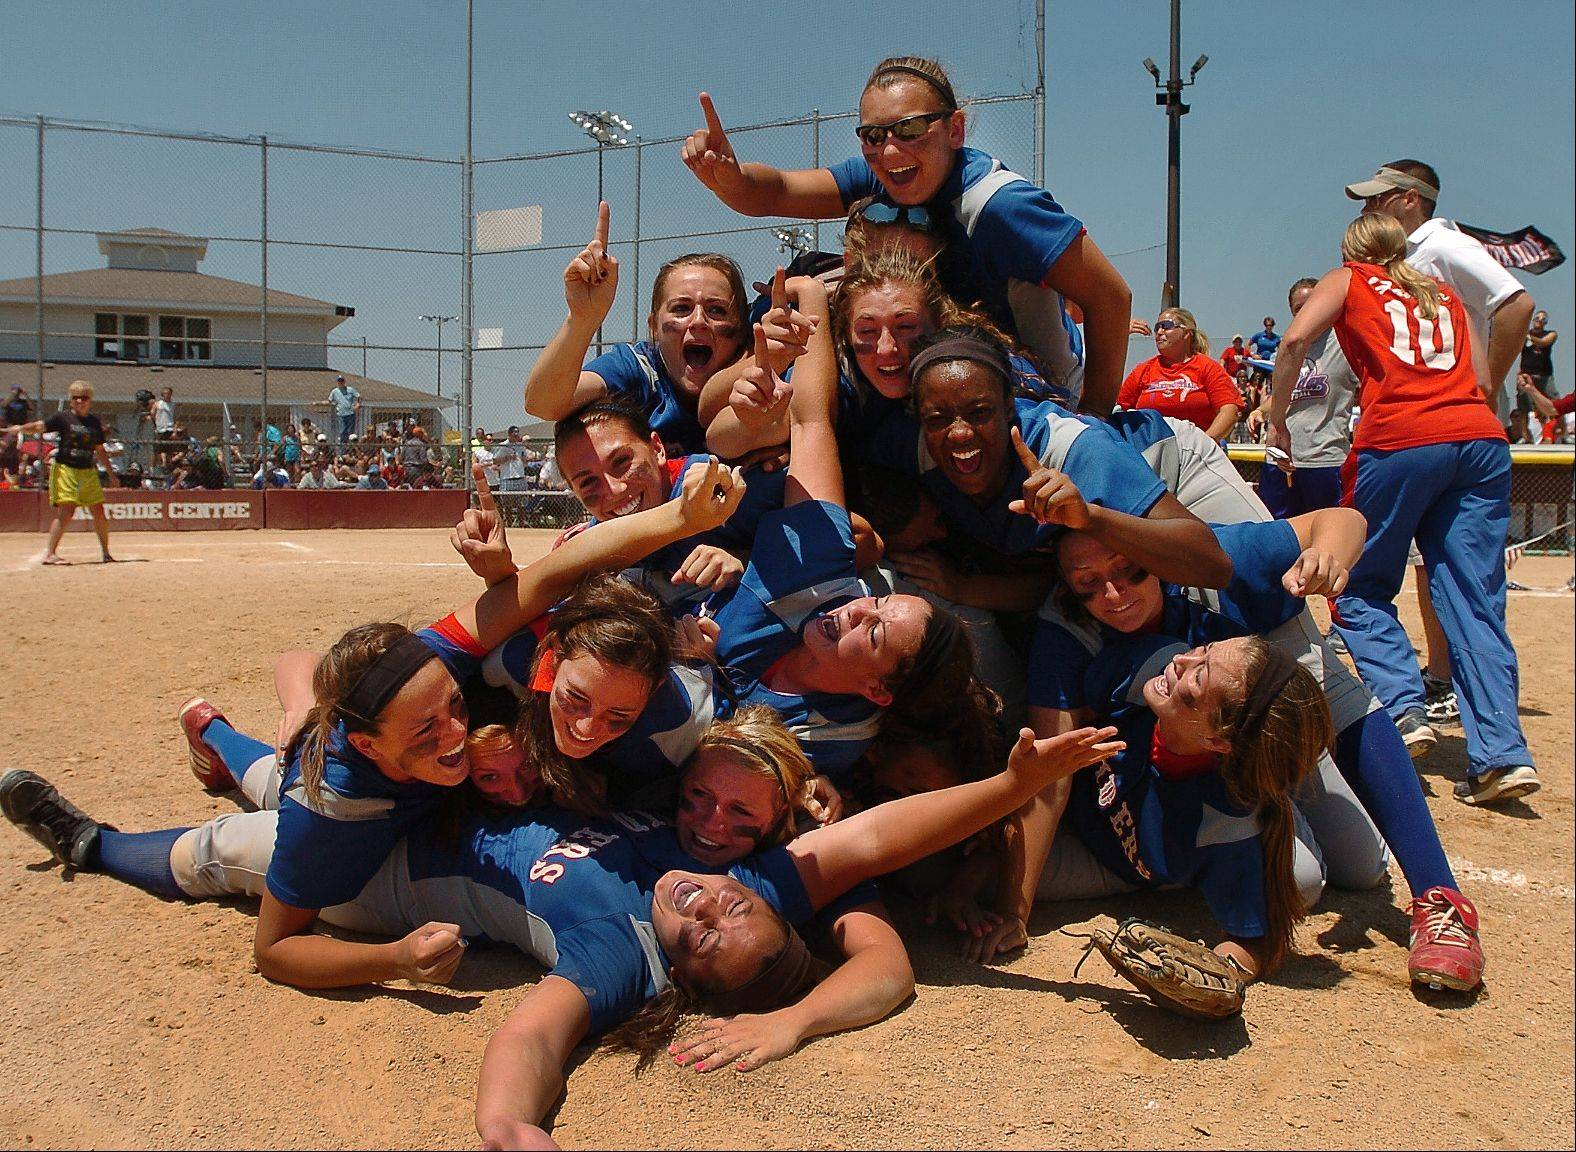 Glenbard South celebrates after winning the Class 3A state softball championship, defeating Marengo.